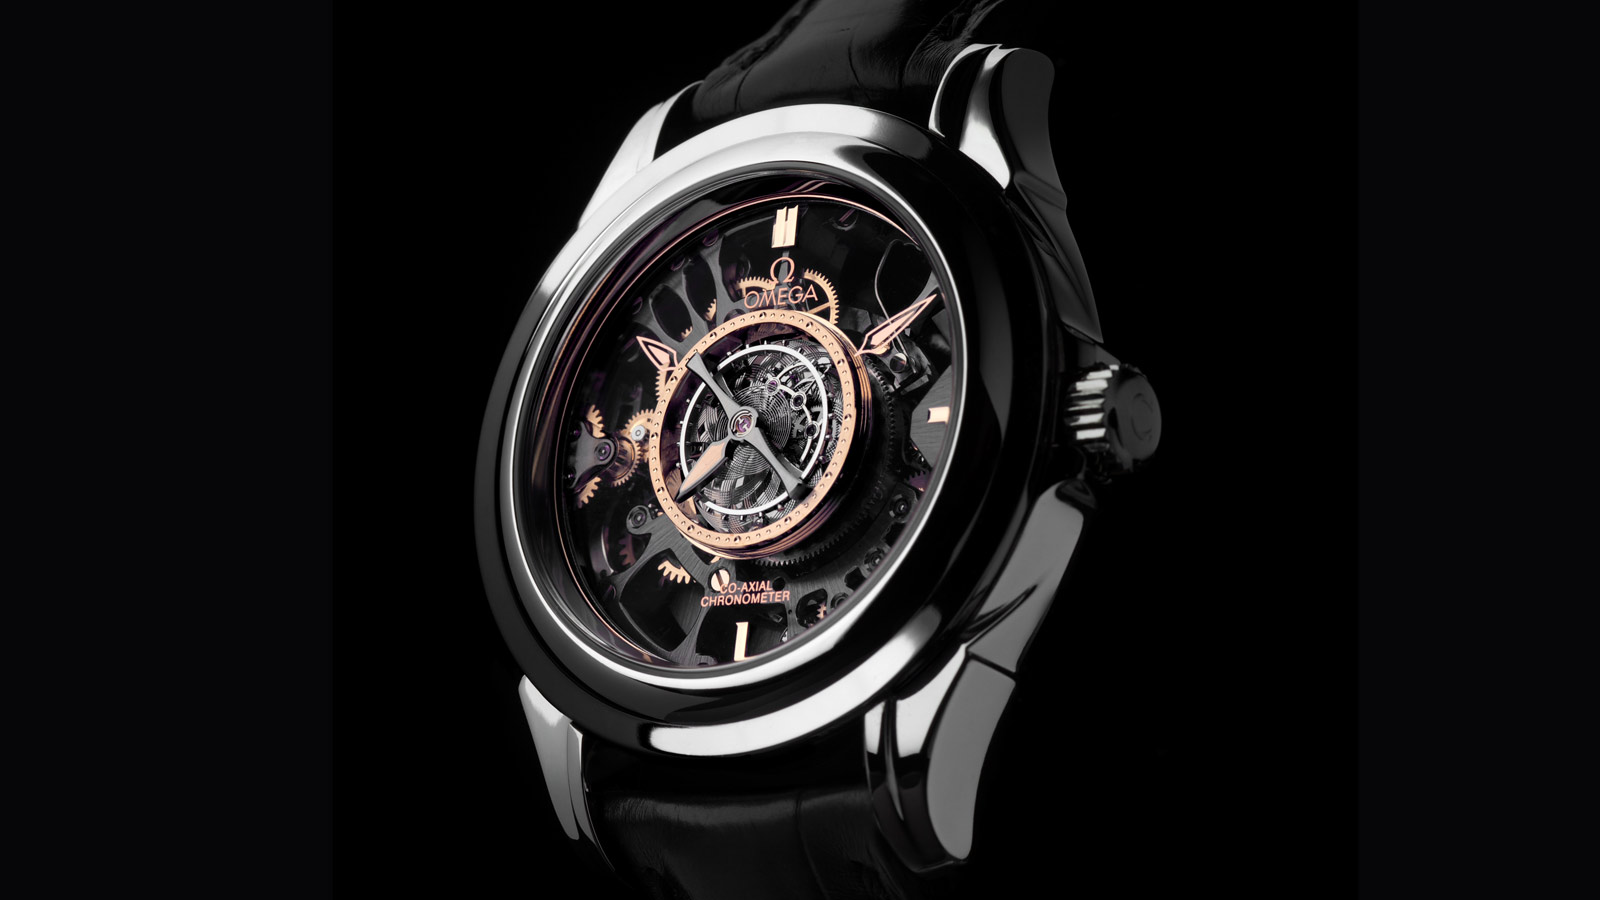 De Ville トゥールビヨン Tourbillon Co‑Axial Limited Edition 38.7 mm - 513.93.39.21.99.001 - ビュー 1